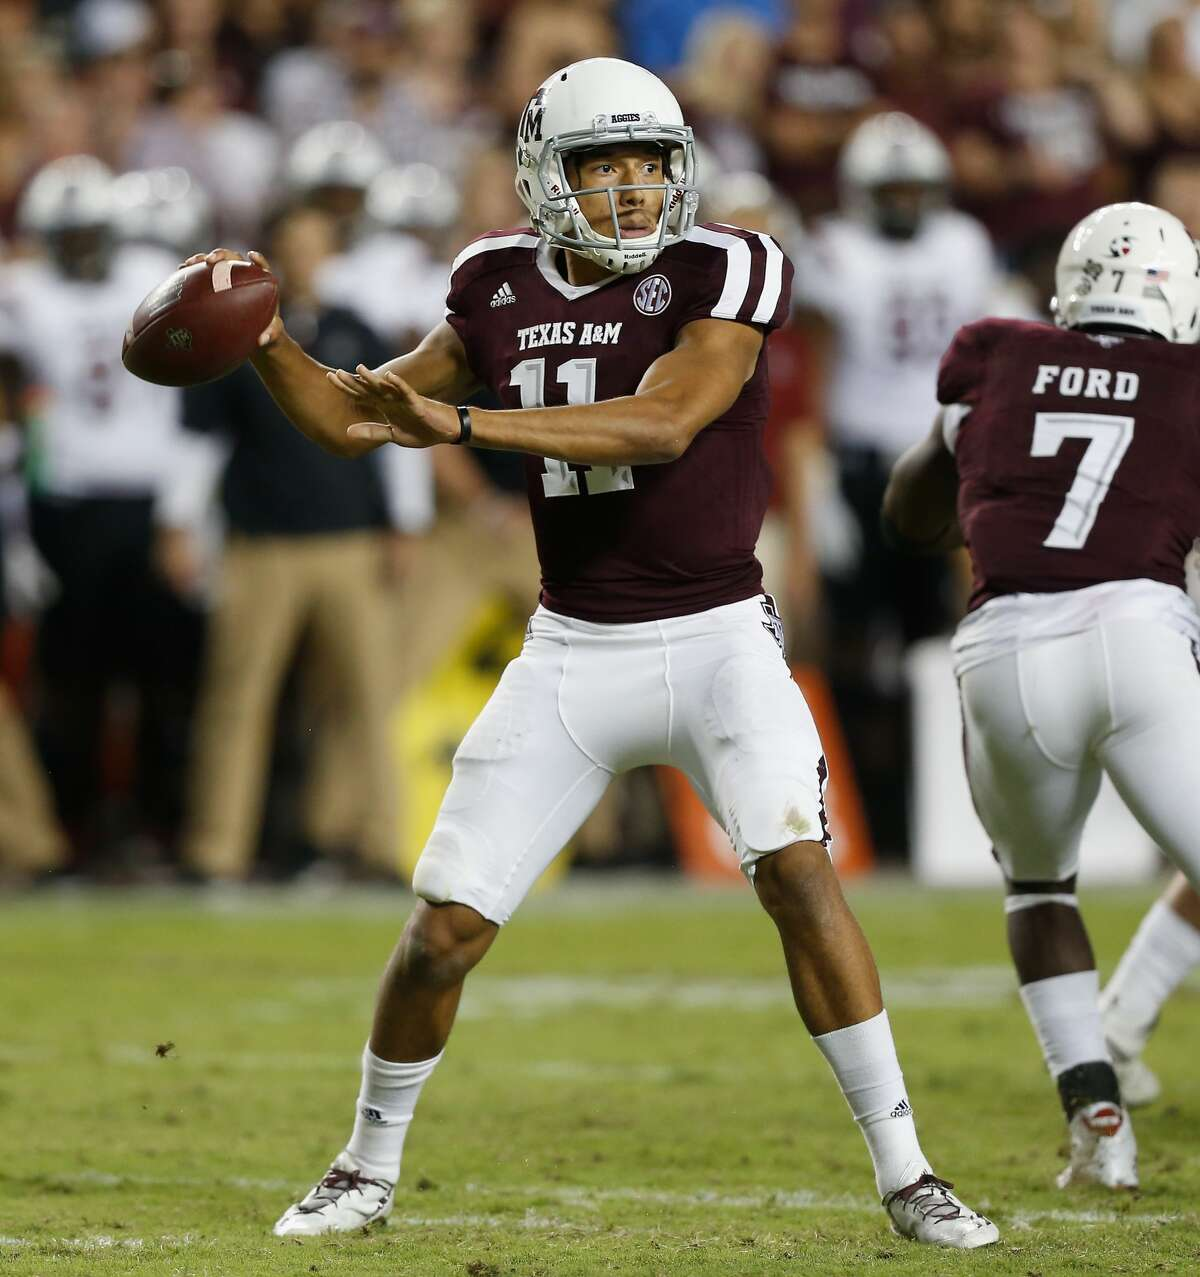 COLLEGE STATION, TX - SEPTEMBER 30: Kellen Mond #11 of the Texas A&M Aggies looks for a receiver against the South Carolina Gamecocks at Kyle Field on September 30, 2017 in College Station, Texas. (Photo by Bob Levey/Getty Images)